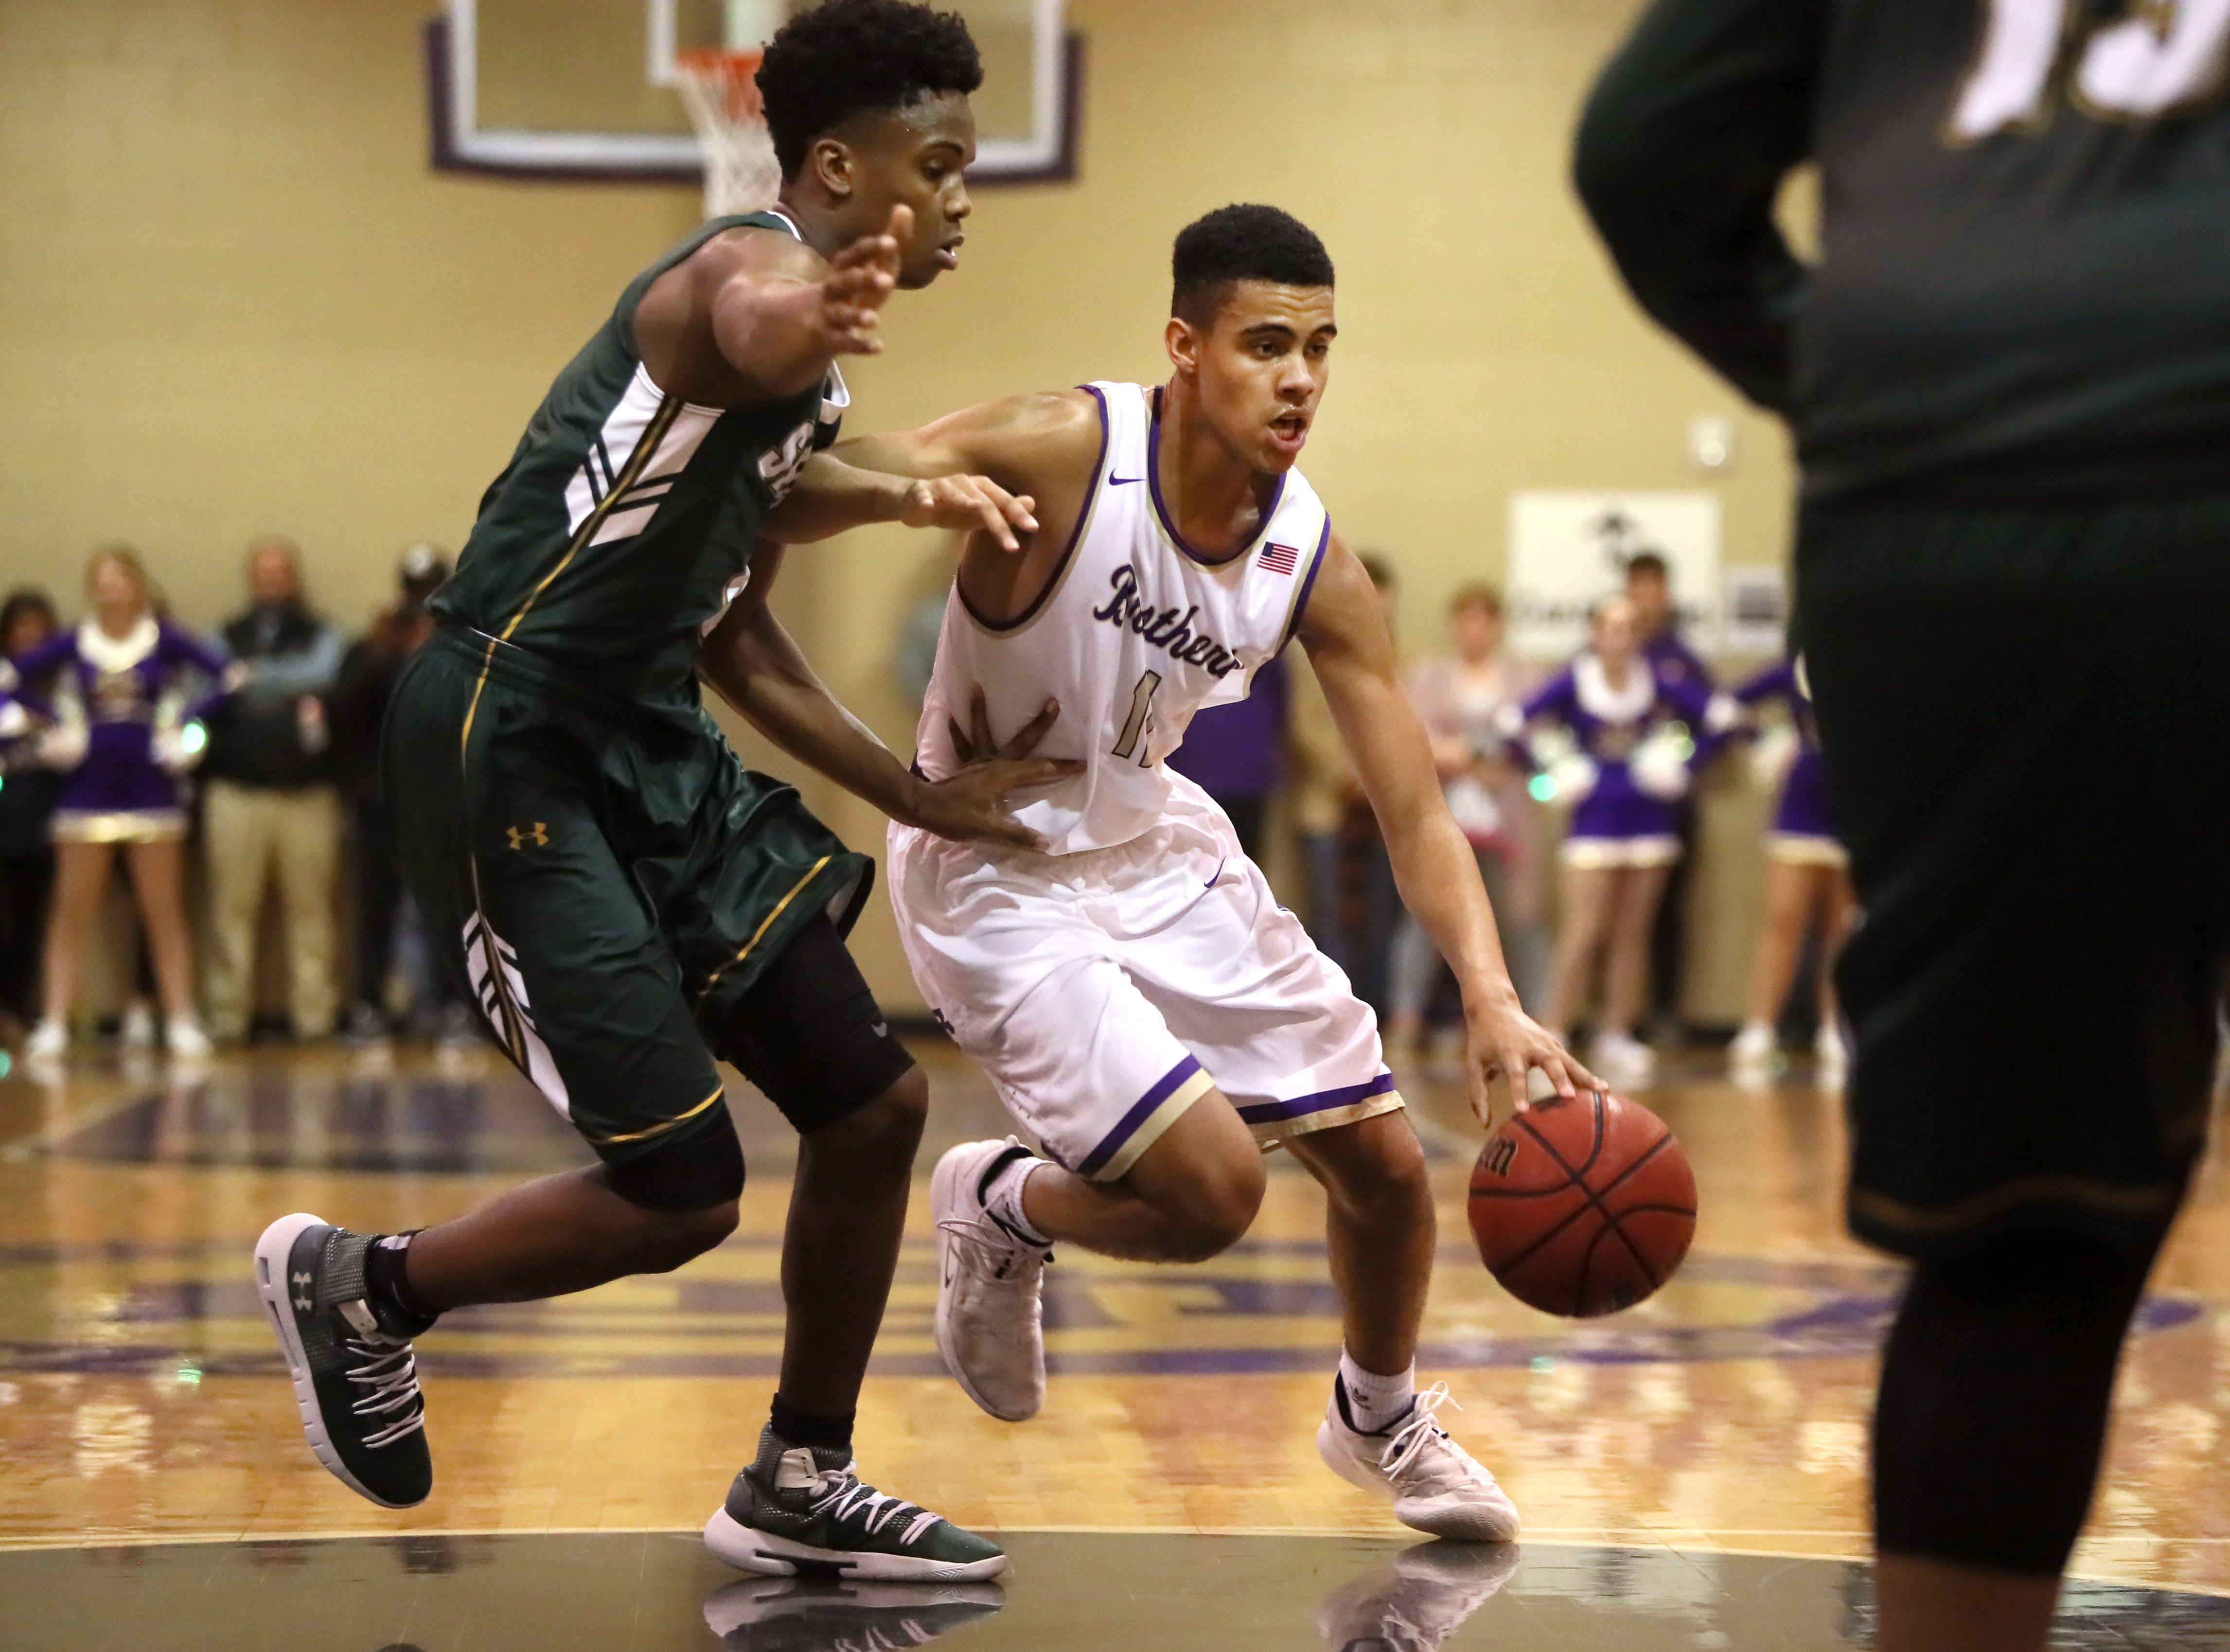 Christian Brothers' Reese Mcmullen drives past Briarcrest's Marcellus Brigham during their game at Christian Brothers High School on Friday, Jan. 11, 2019.